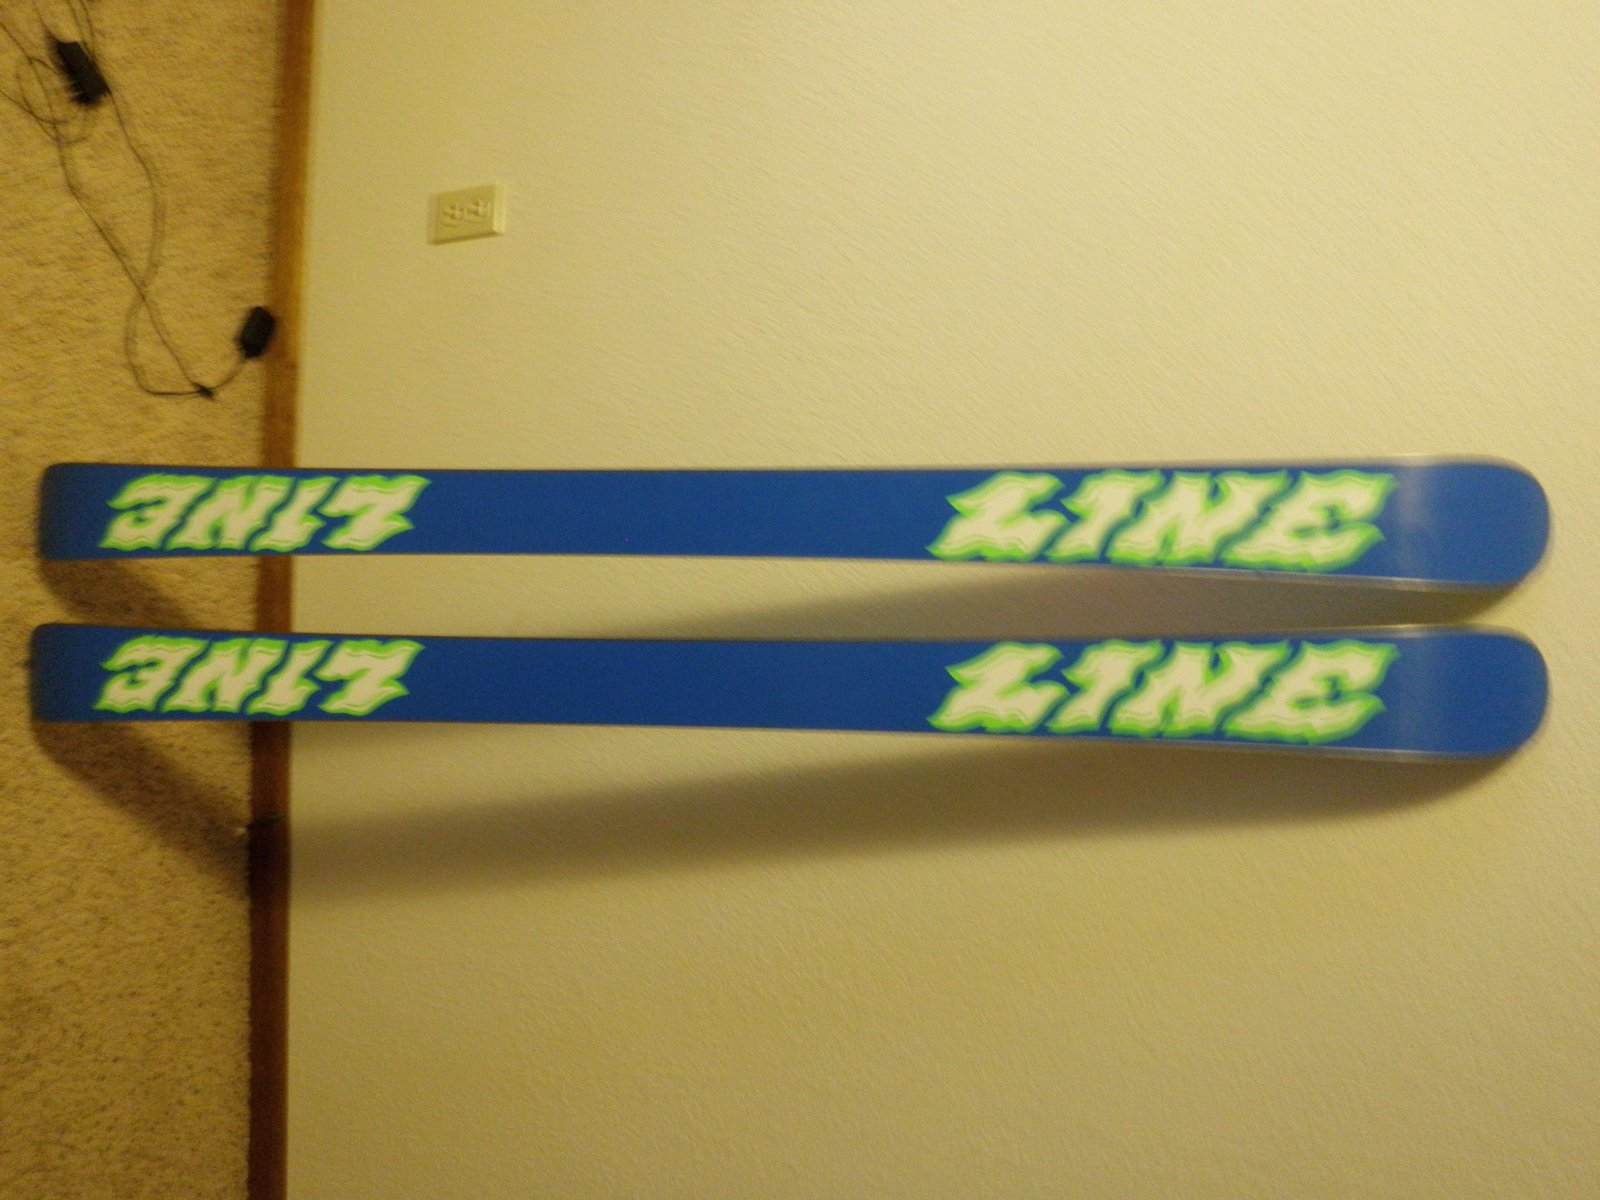 New skis - 1 of 2